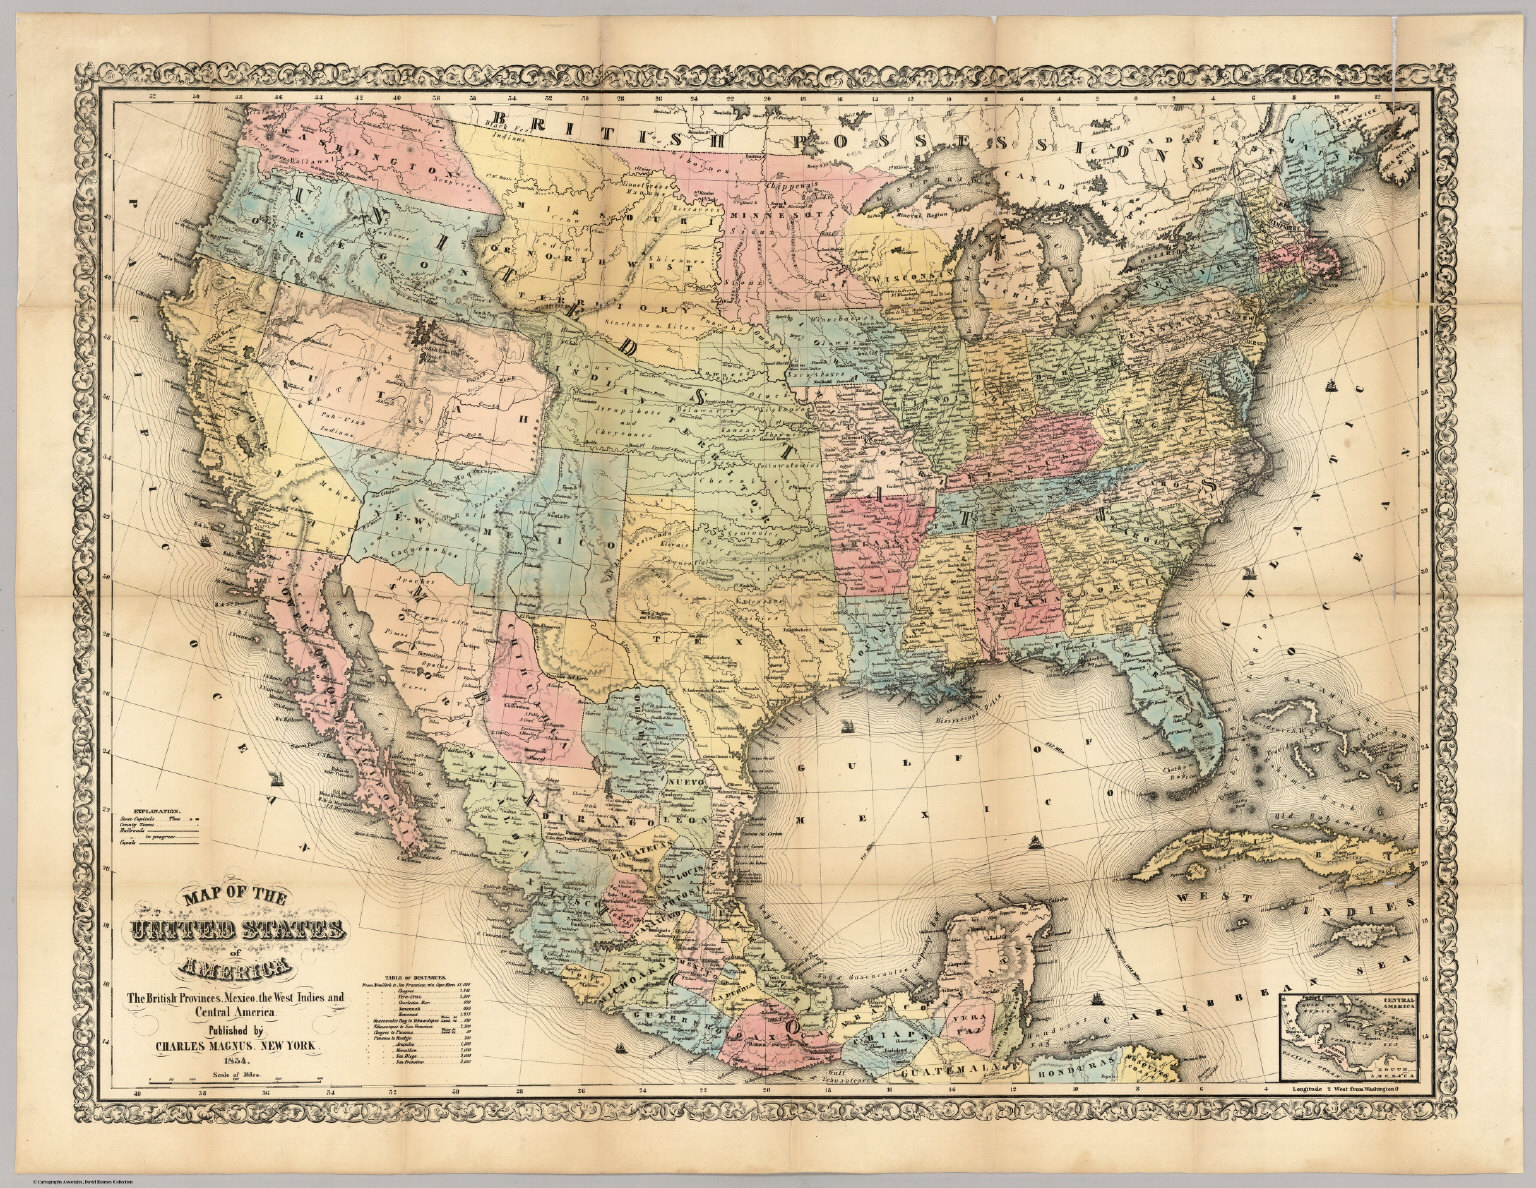 map of the united states of america the british provinces mexico